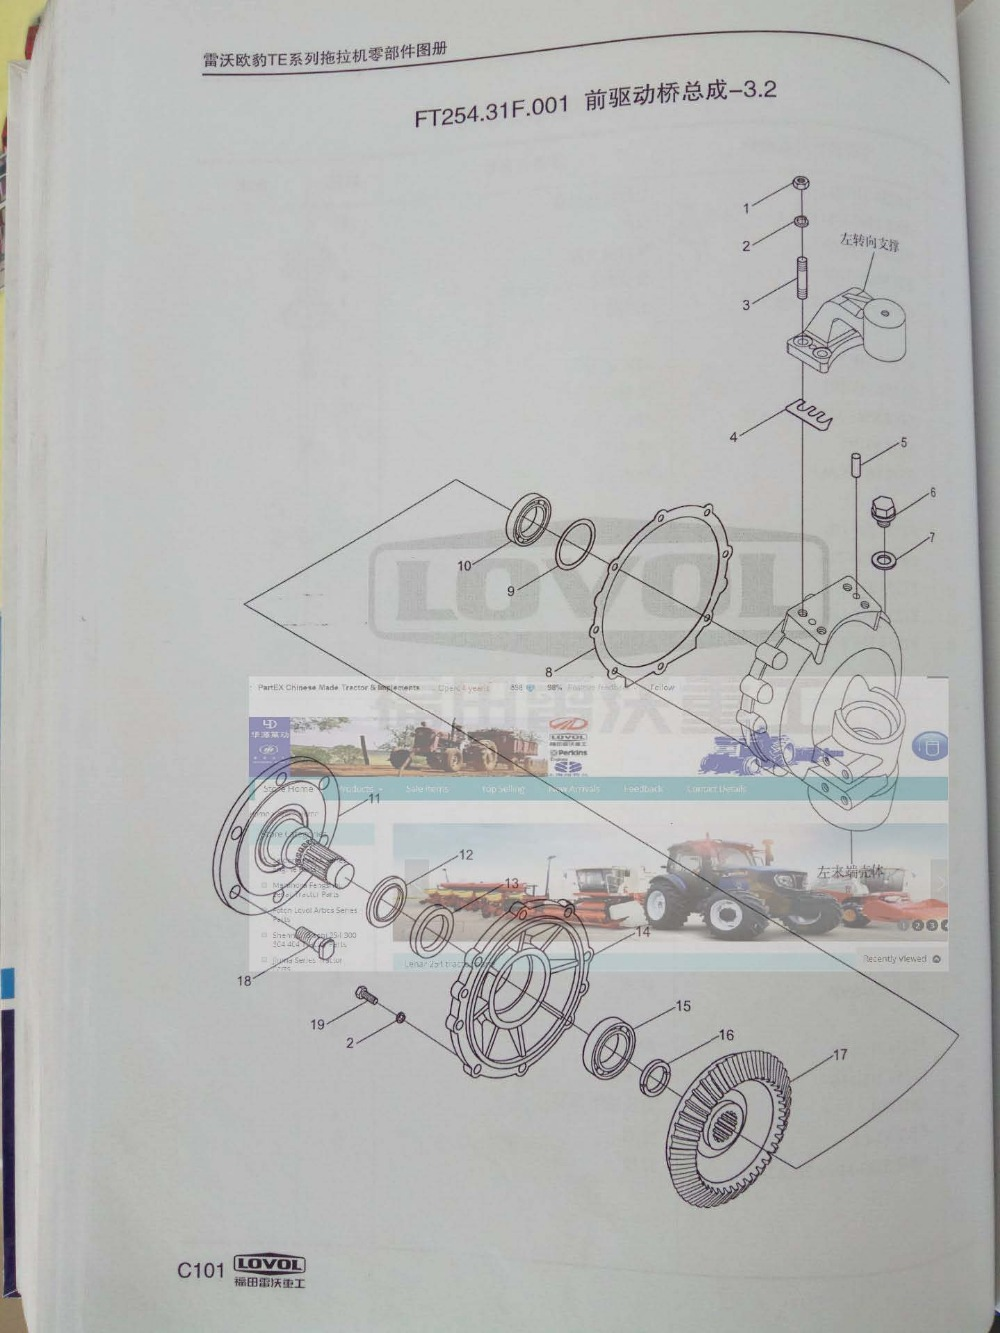 Foton 404 Tractor Wiring Diagram Trusted Wiring Diagram \u2022 504  International Tractor Parts Diagram International 404 Tractor Wiring Diagram